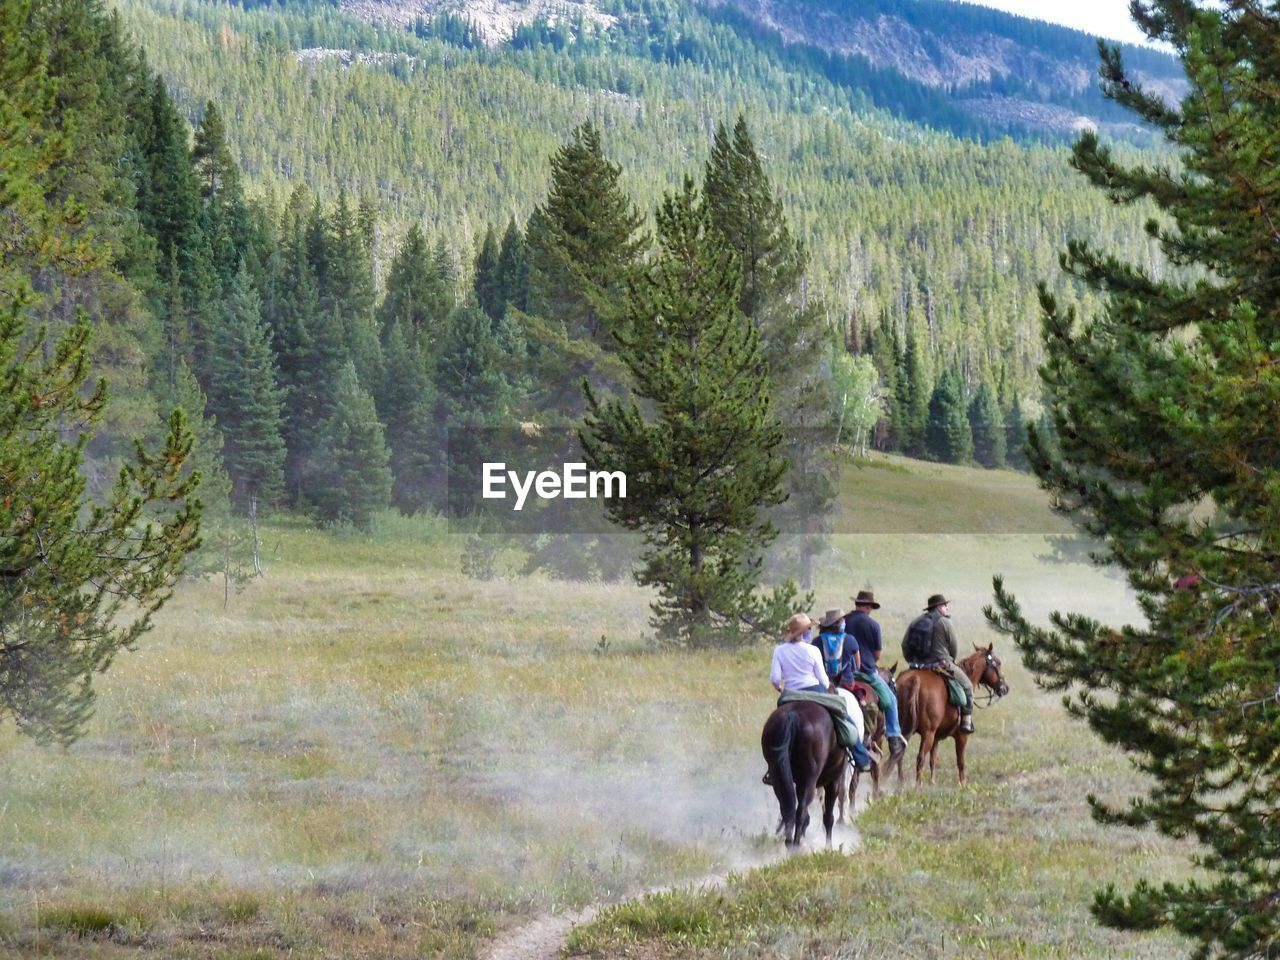 plant, tree, horse, men, mammal, animal wildlife, activity, mountain, livestock, domestic, domestic animals, real people, riding, nature, horseback riding, day, ride, land, outdoors